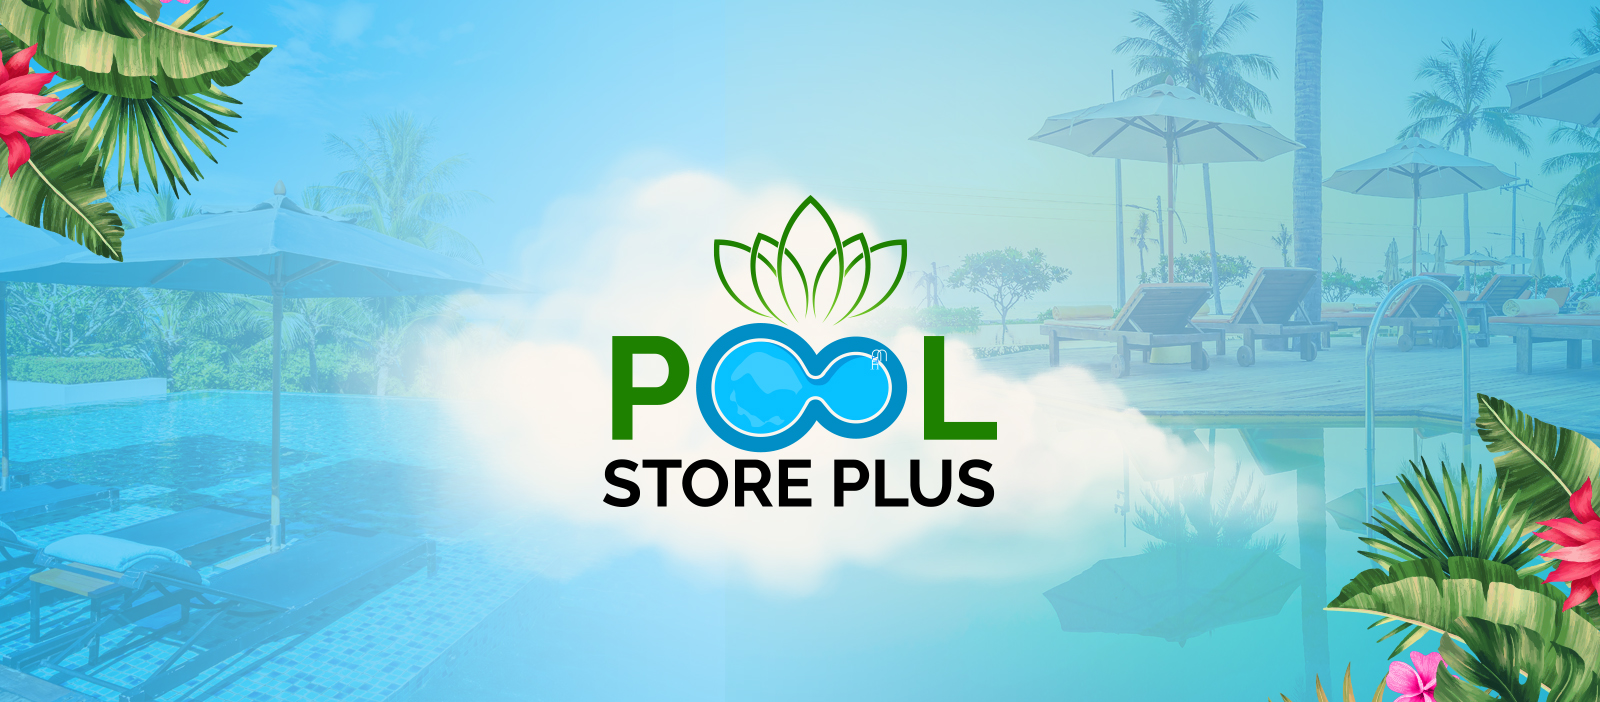 Pool Shop & Pool Services